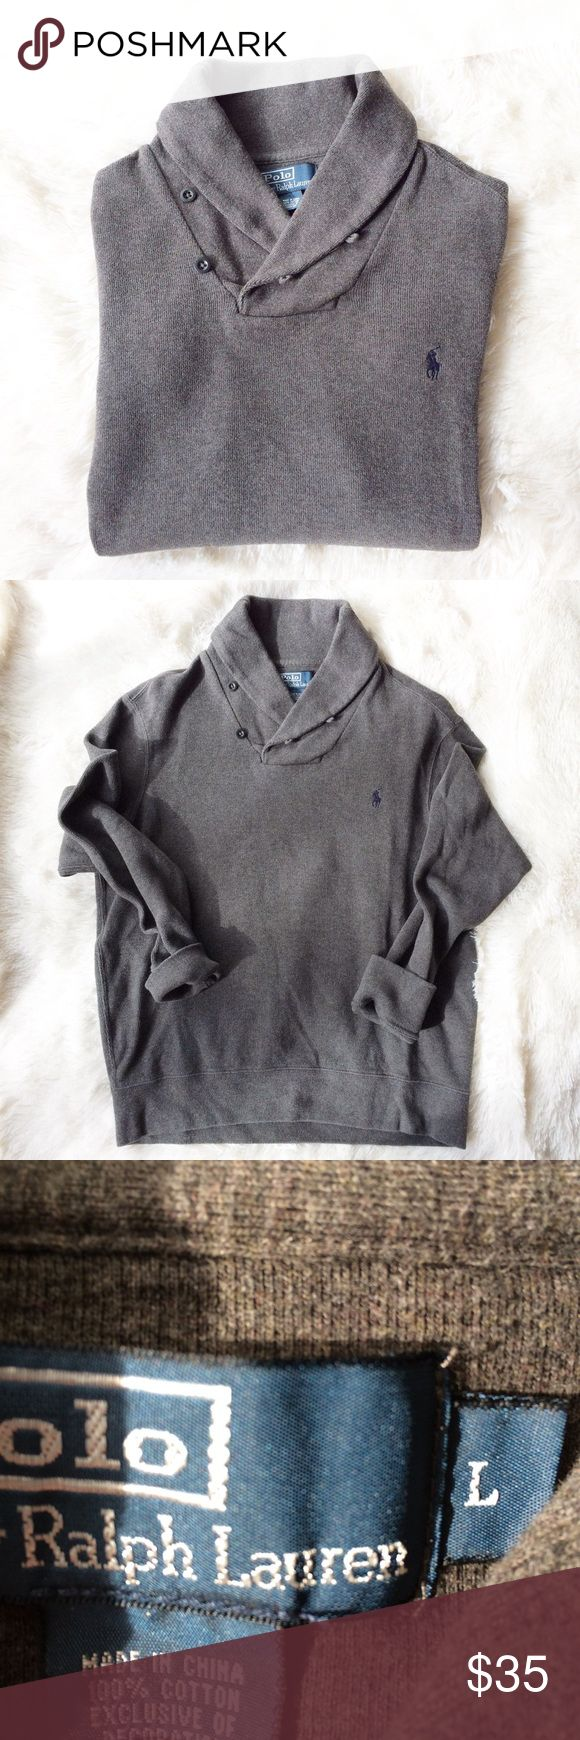 Polo by Ralph Lauren Men's Shawl Collar Sweater Polo by Ralph Lauren Men's Shawl Collar Sweater - size large - EUC - dark charcoal grey with navy logo - last photo shows style Polo by Ralph Lauren Sweaters